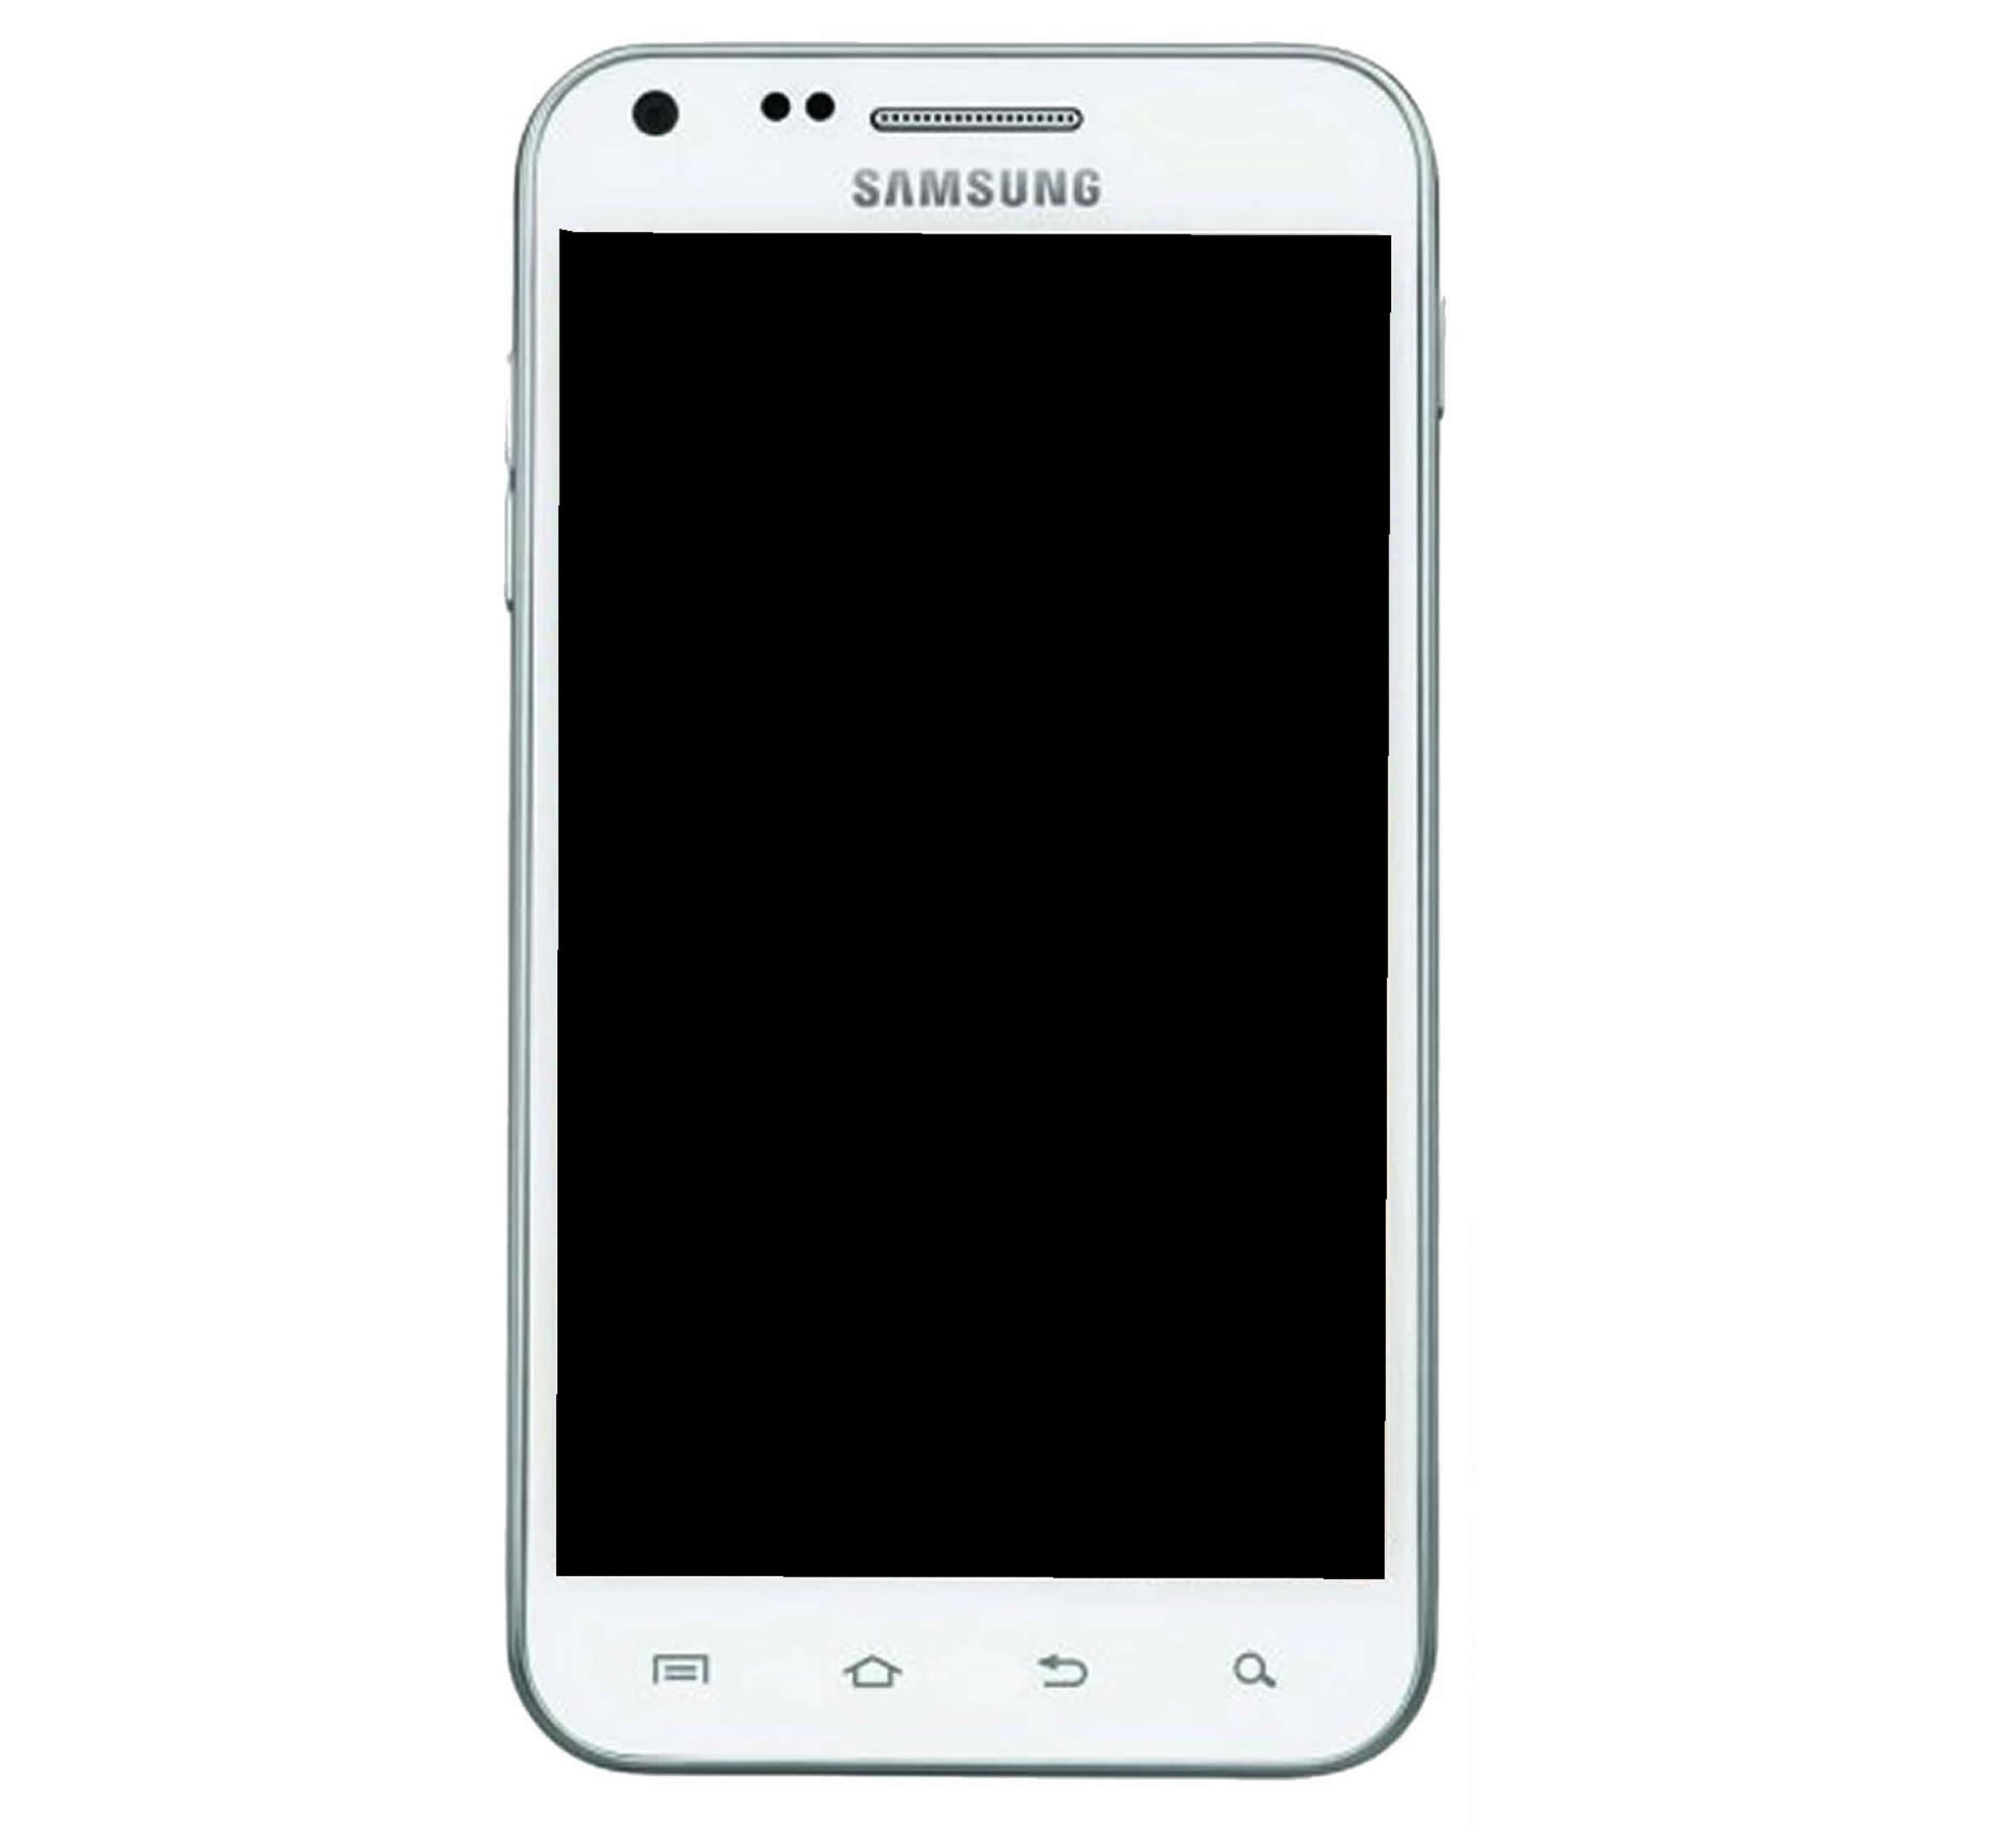 samsung galaxy s2 16gb android smartphone for sprint white excellent condition used cell. Black Bedroom Furniture Sets. Home Design Ideas